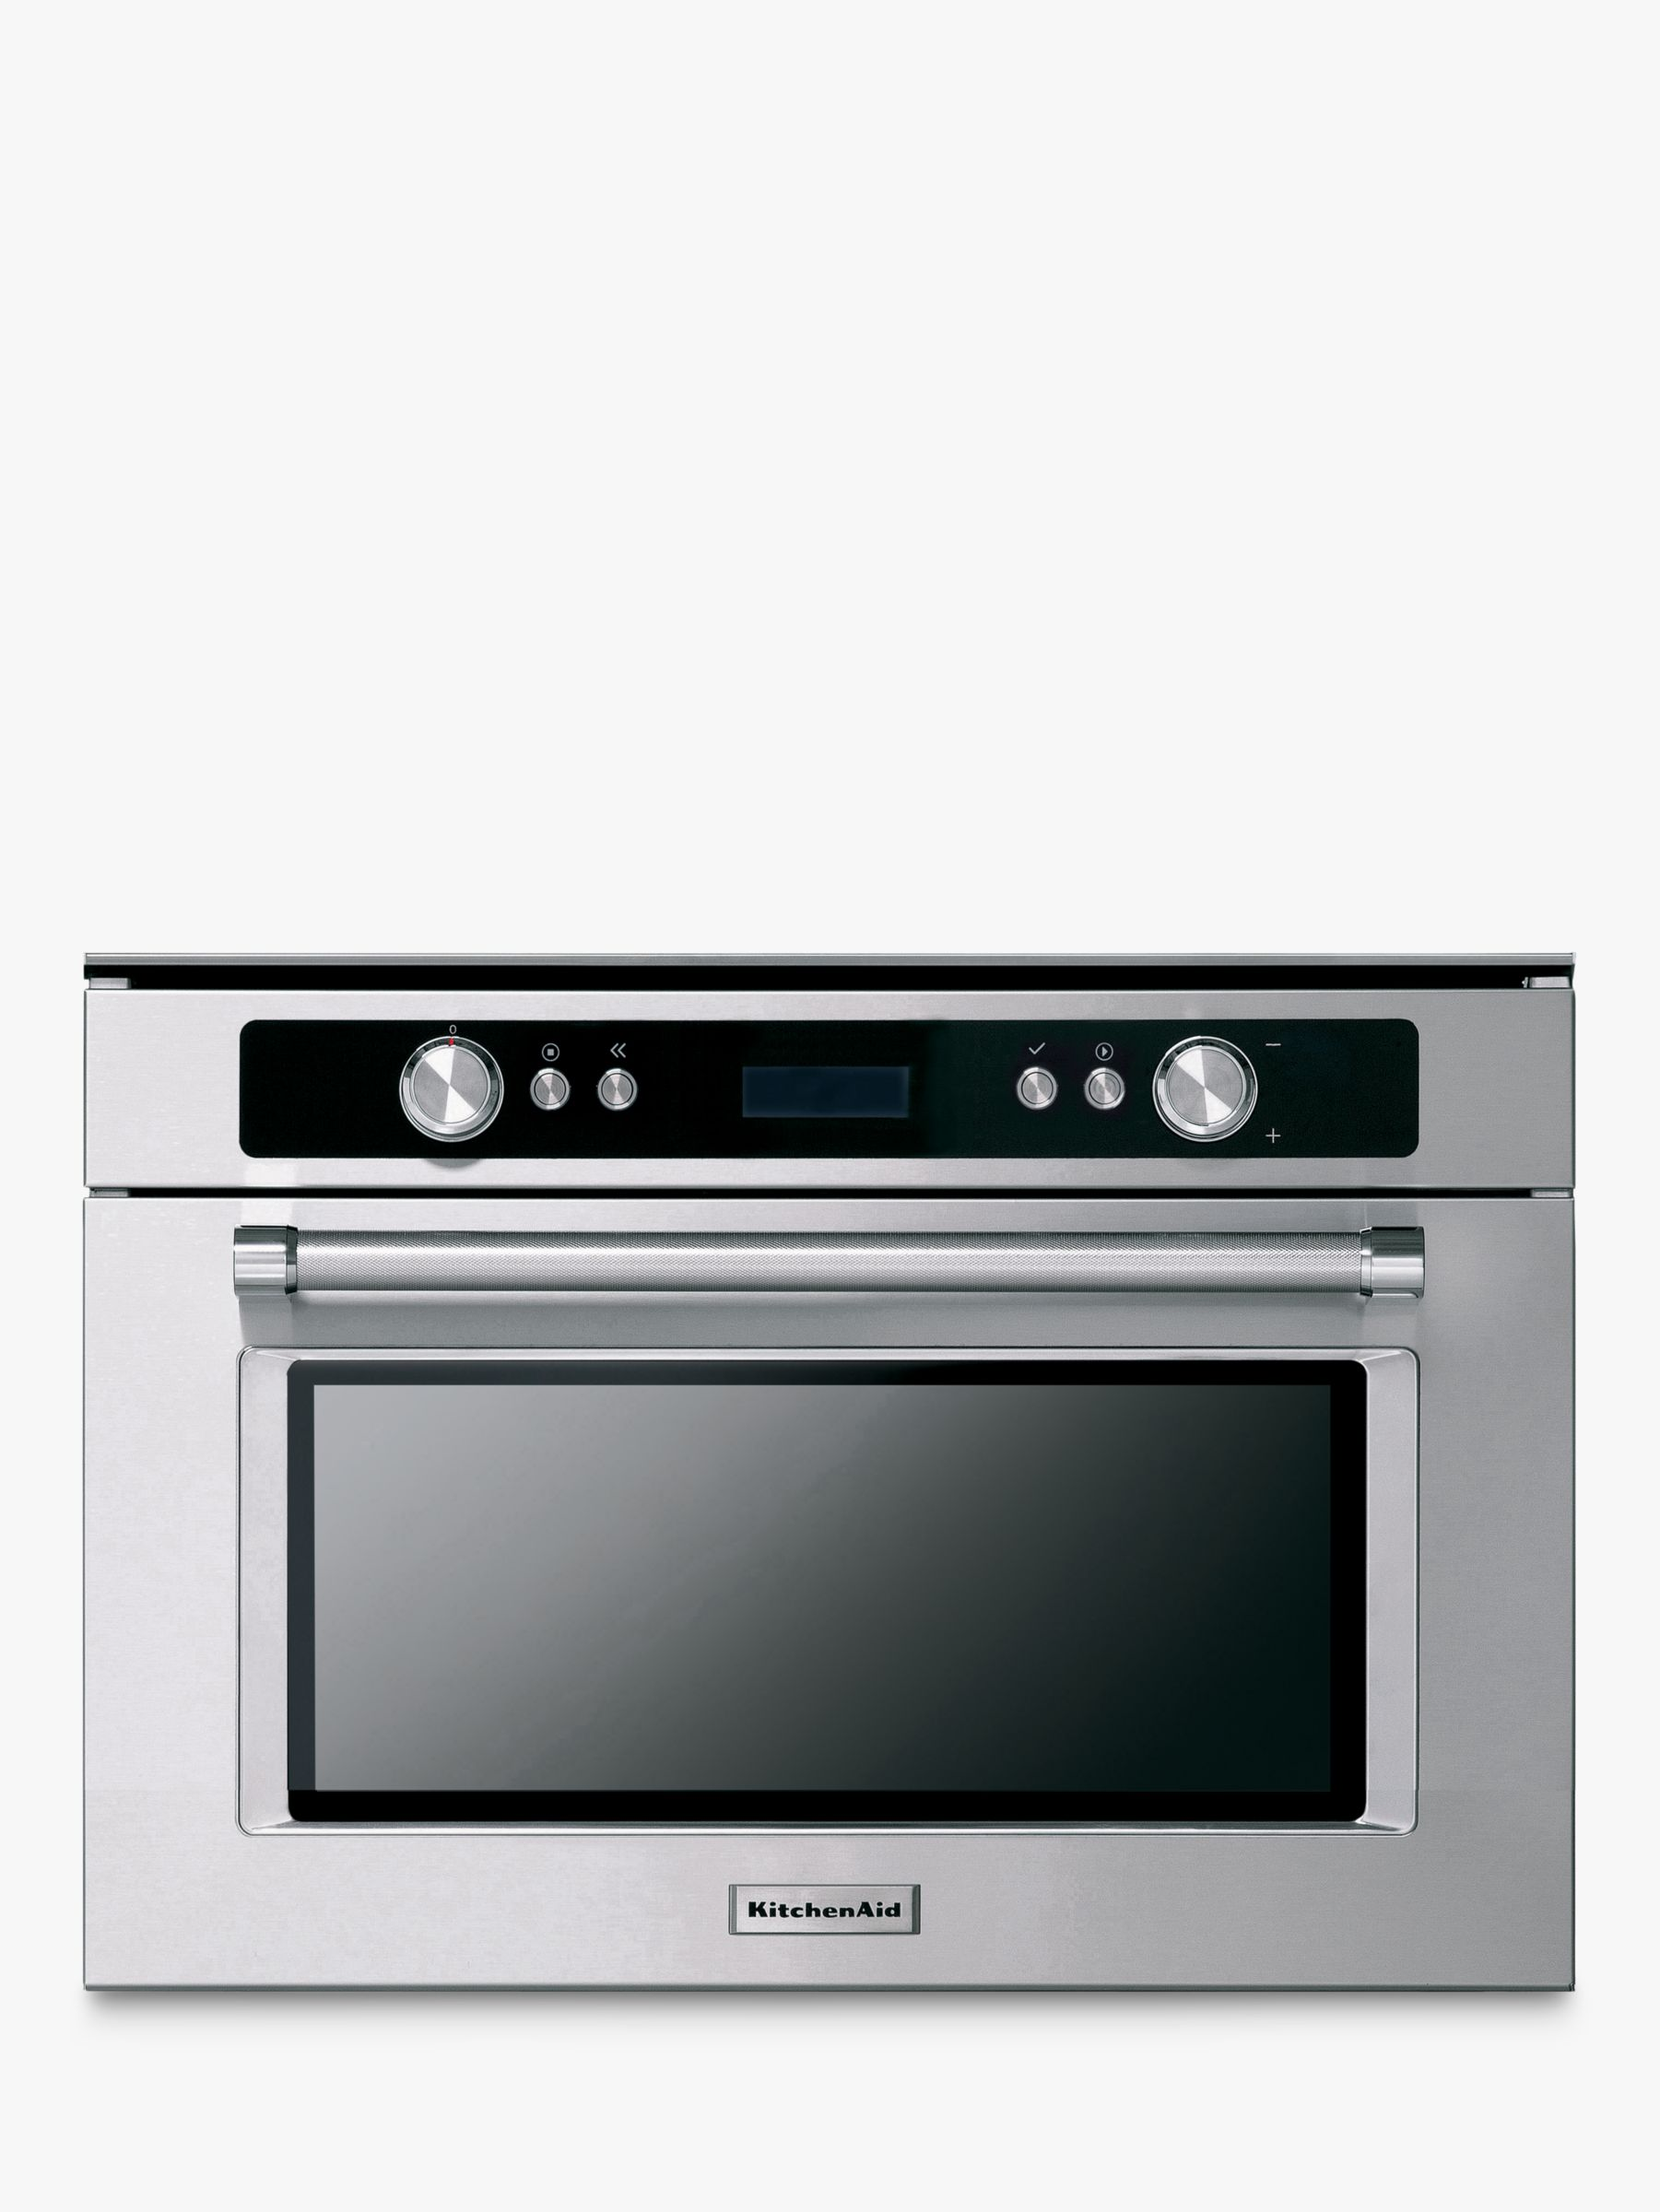 KitchenAid KMQCX38600 Built-In Multifunction Microwave Oven, Stainless Steel